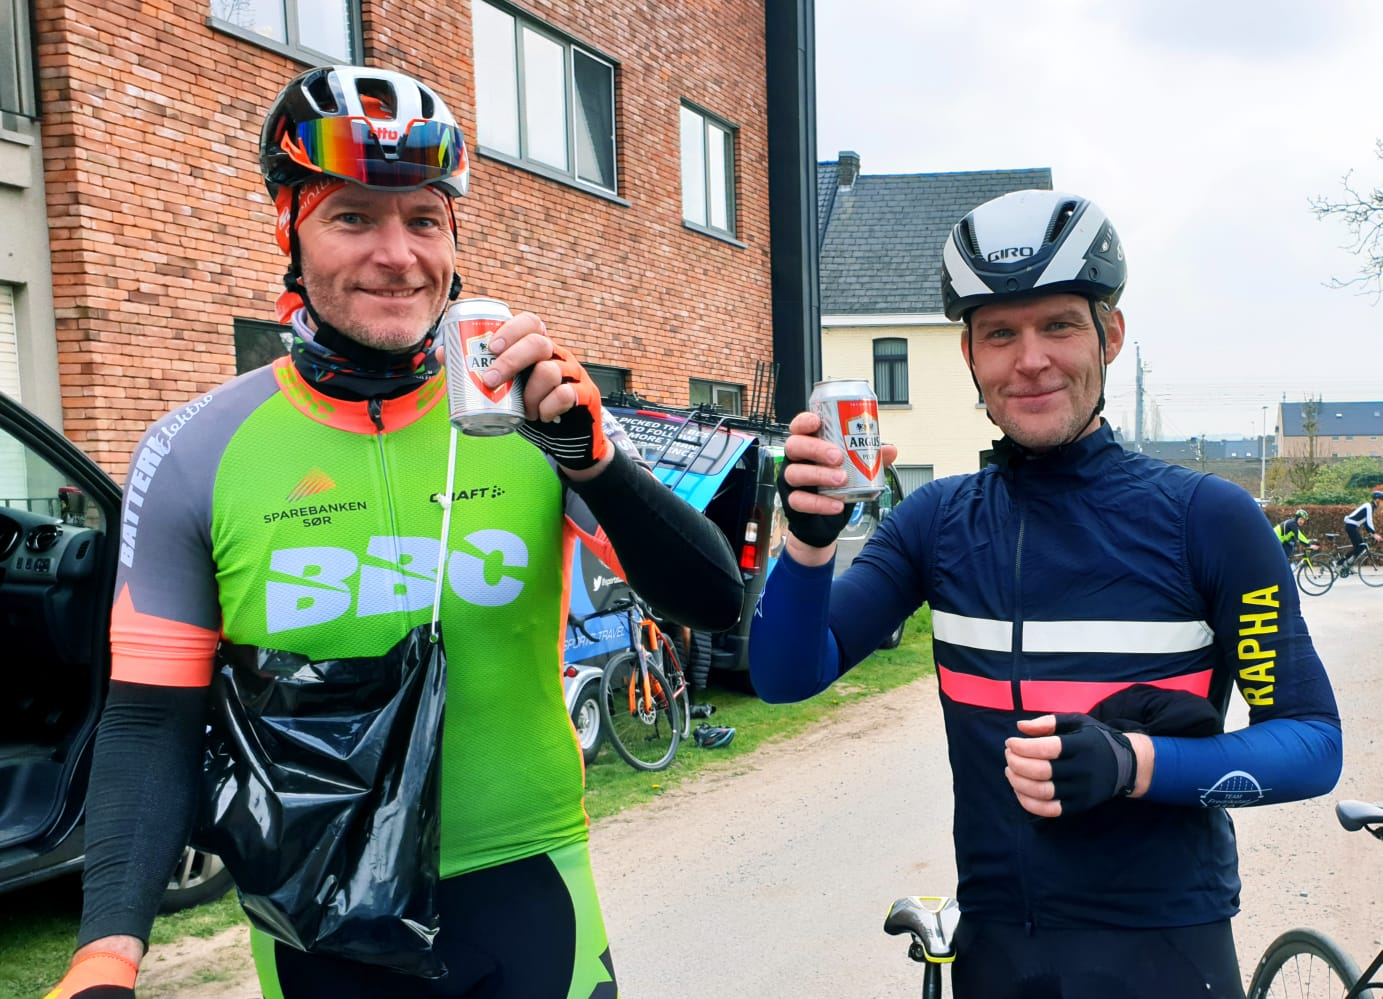 8a7c8cafa We support all 4 distance options which includes the opportunity to cycle  the full 230 km from Antwerp.